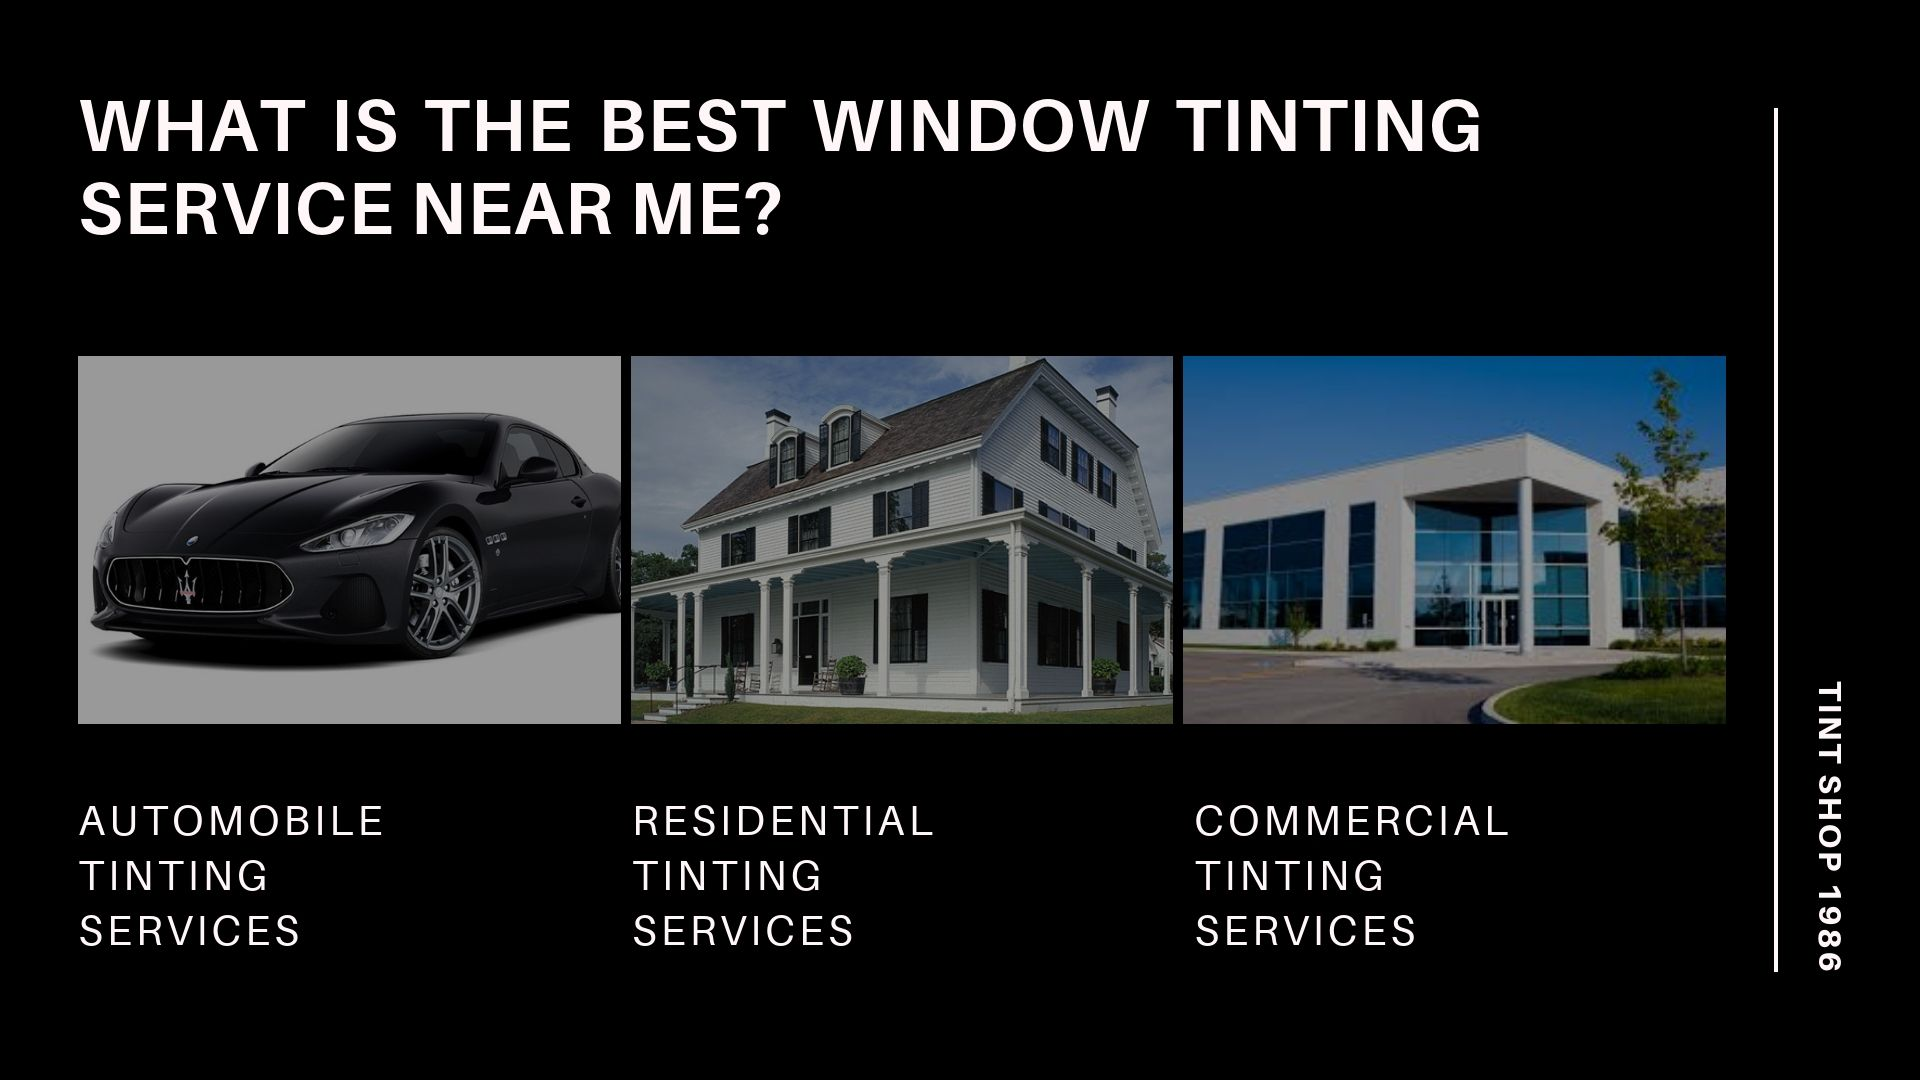 What Is The Best Window Tinting Service Near Me?